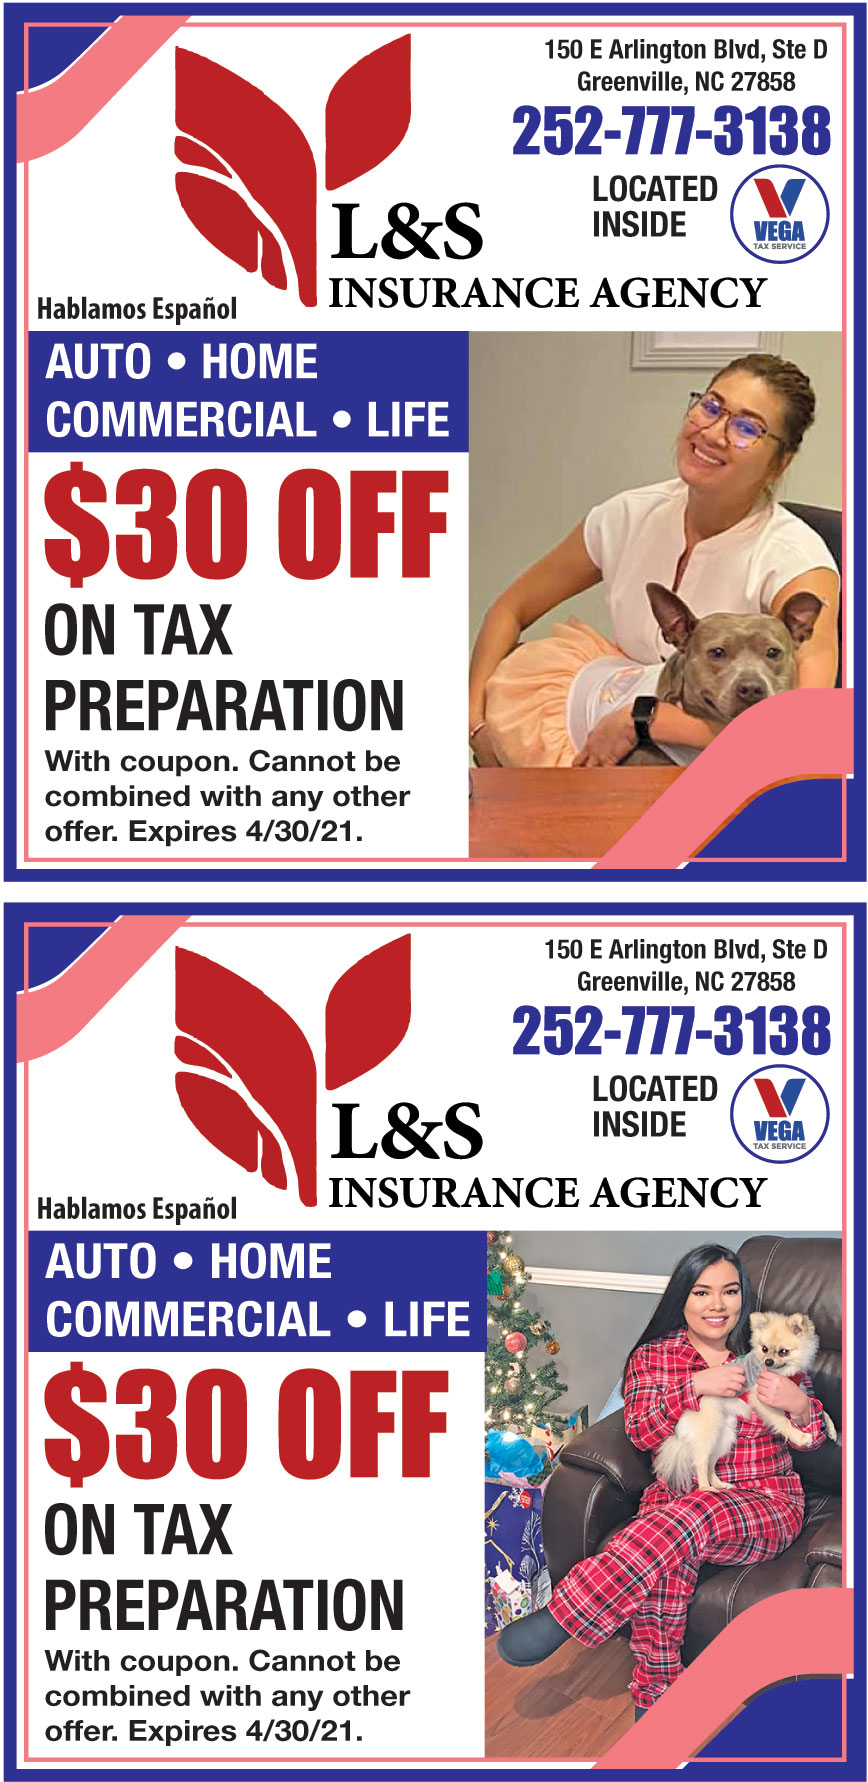 L AND S INSURANCE AGENCY